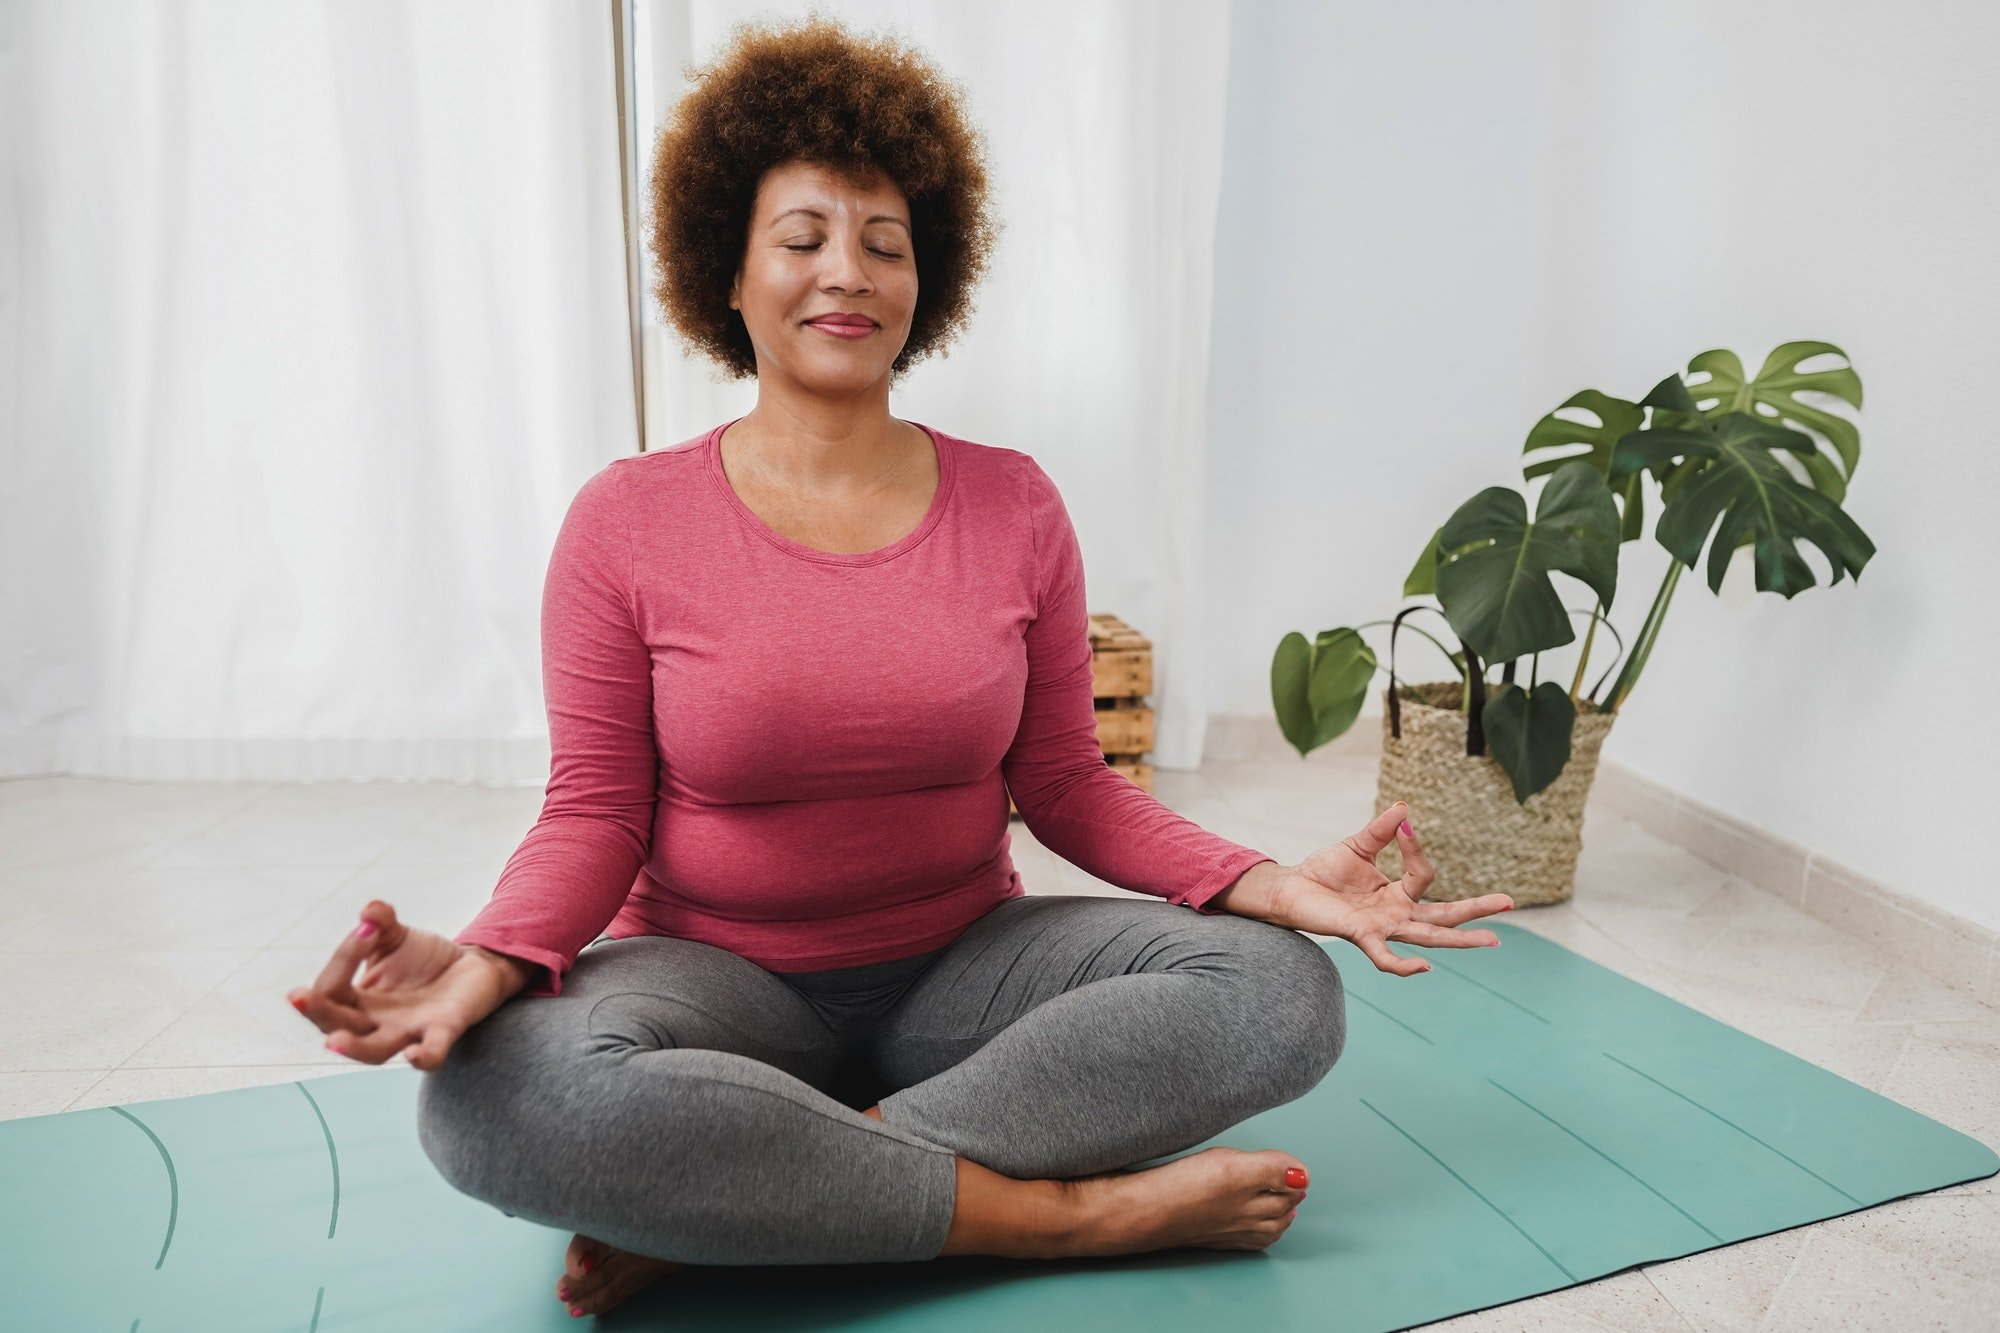 African senior woman doing yoga session at home - Focus on face